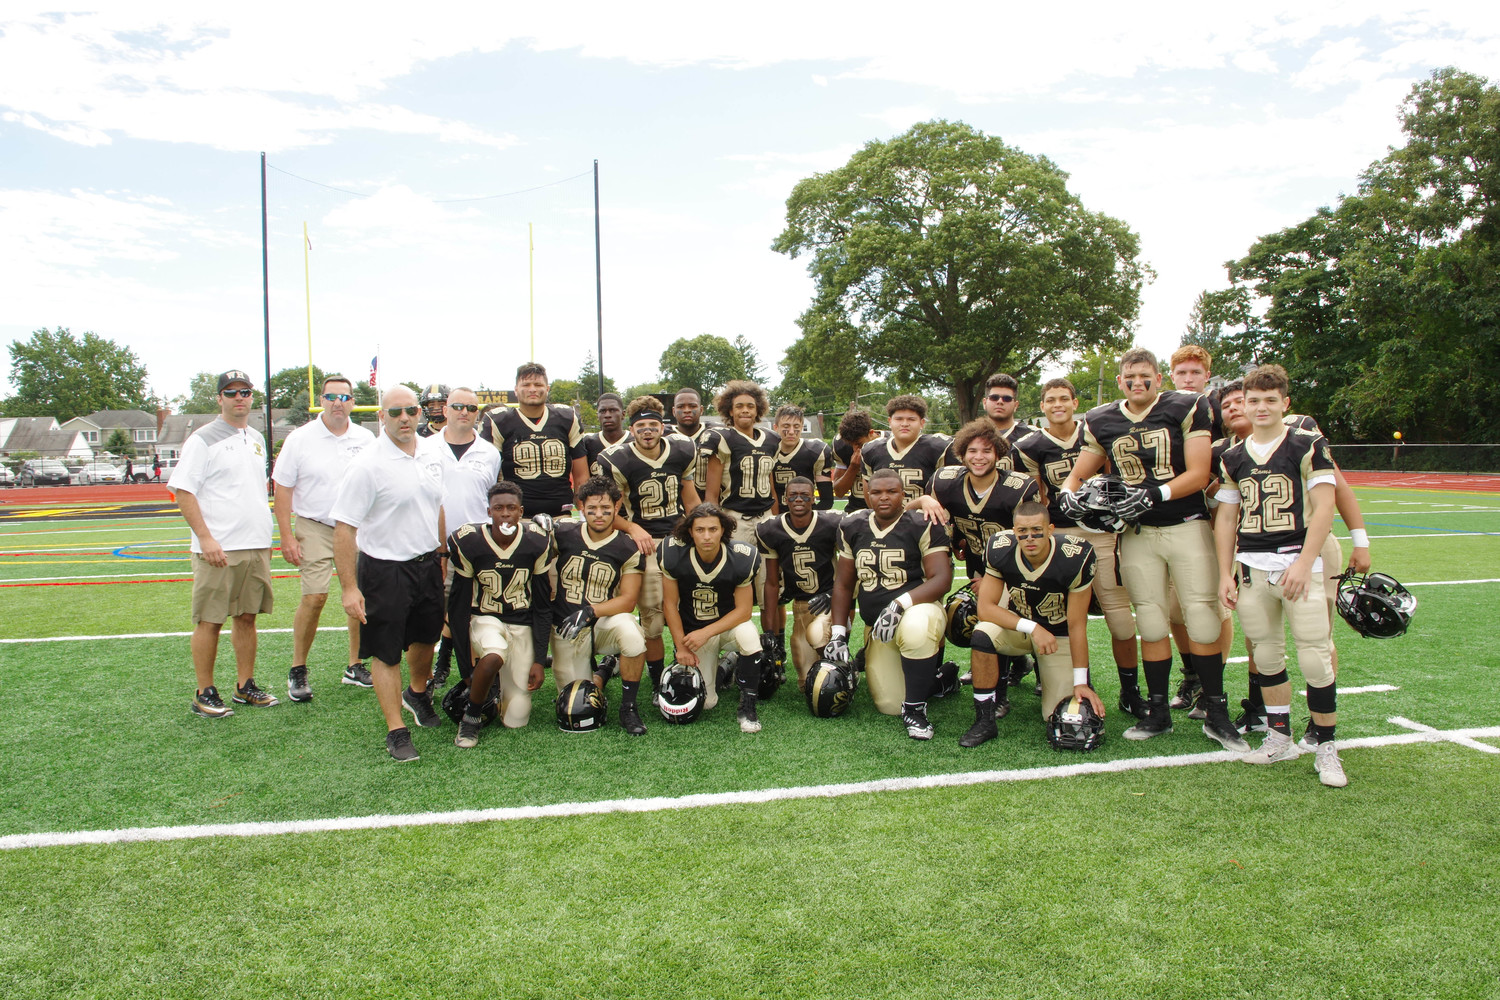 The Rams defended their home field with a 32-6 win over Friends Academy.